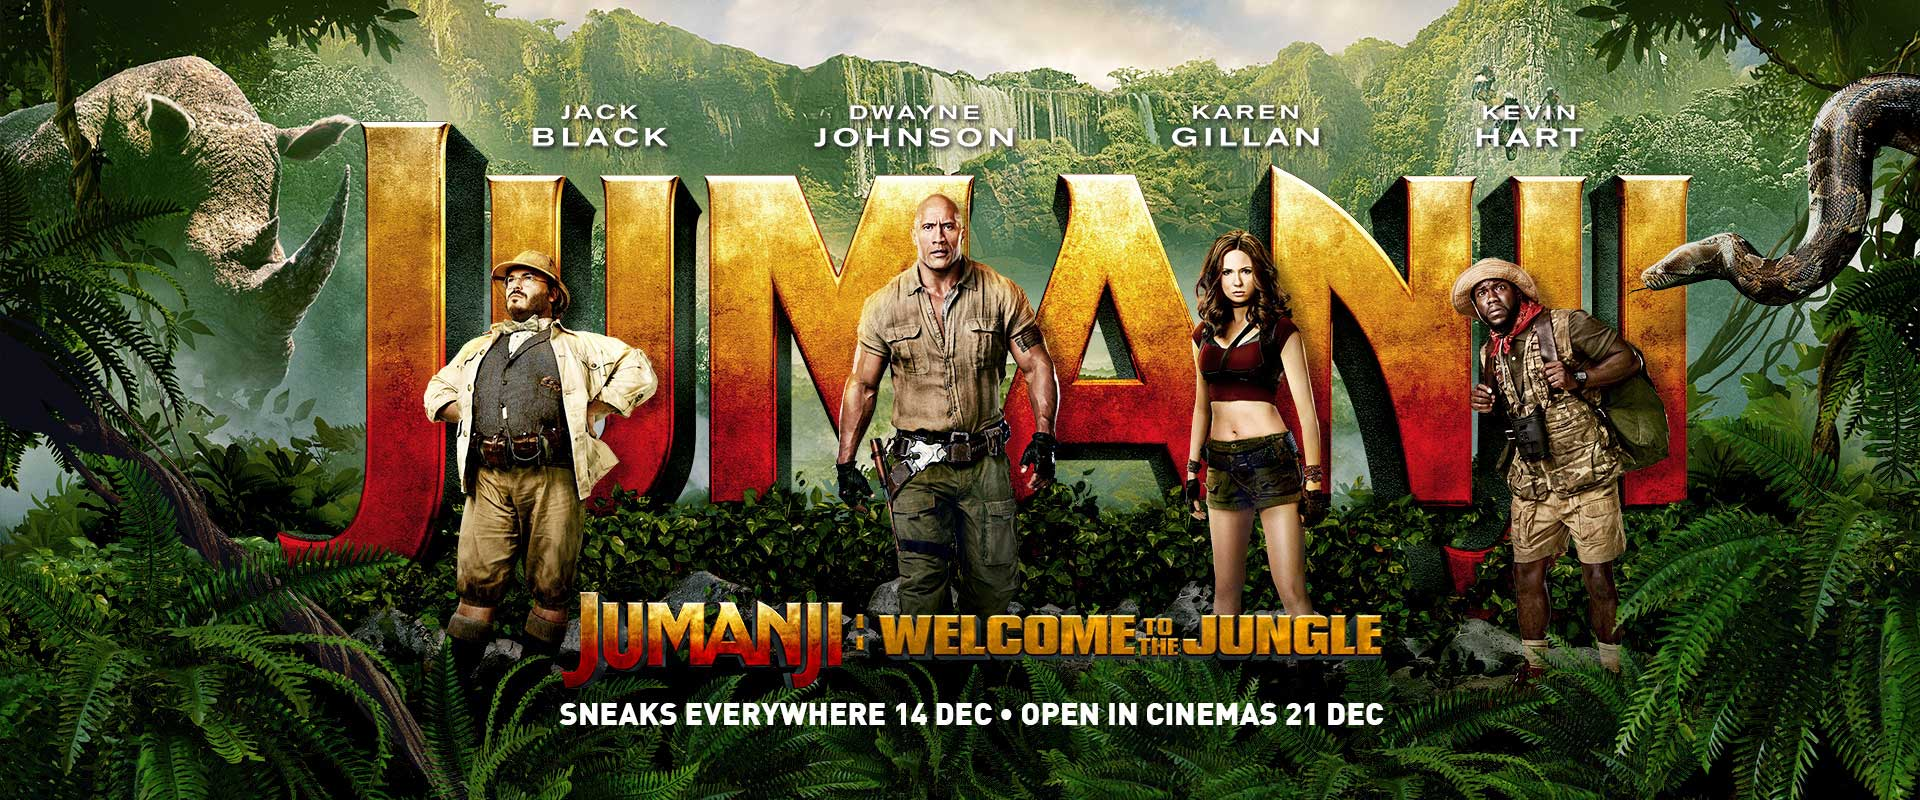 Image result for jumanji poster 2017